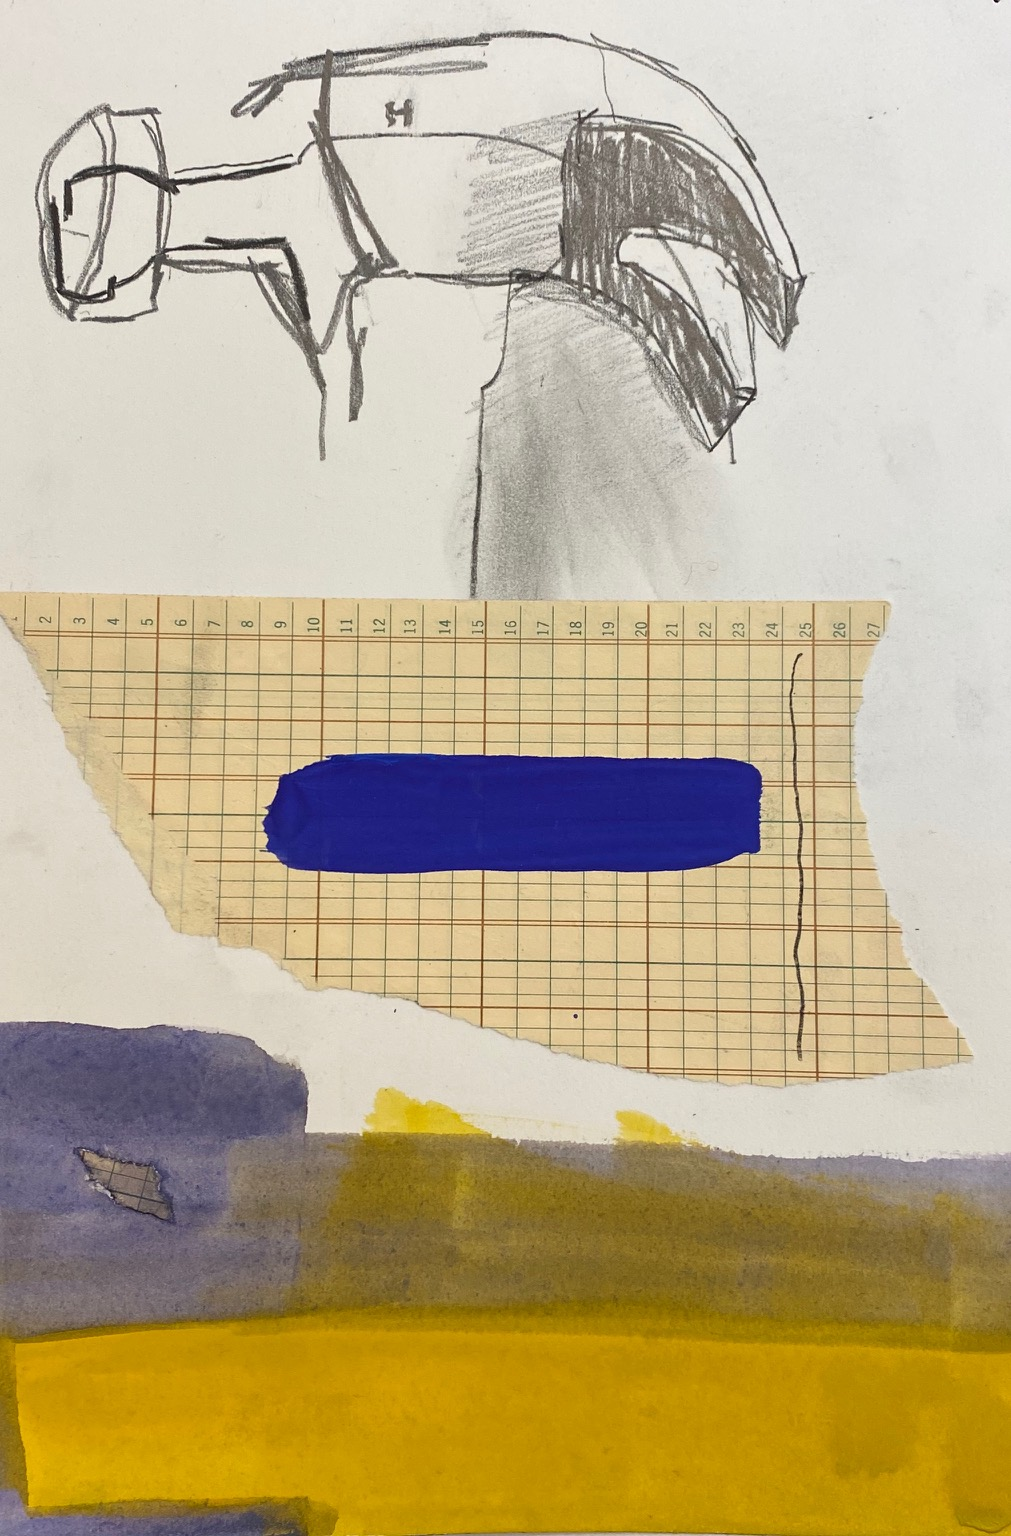 "Leo Hodson, H, 2020, Cut-and-pasted paper, gouache, pencil, 7x10"", Image Courtesy of the Artist"